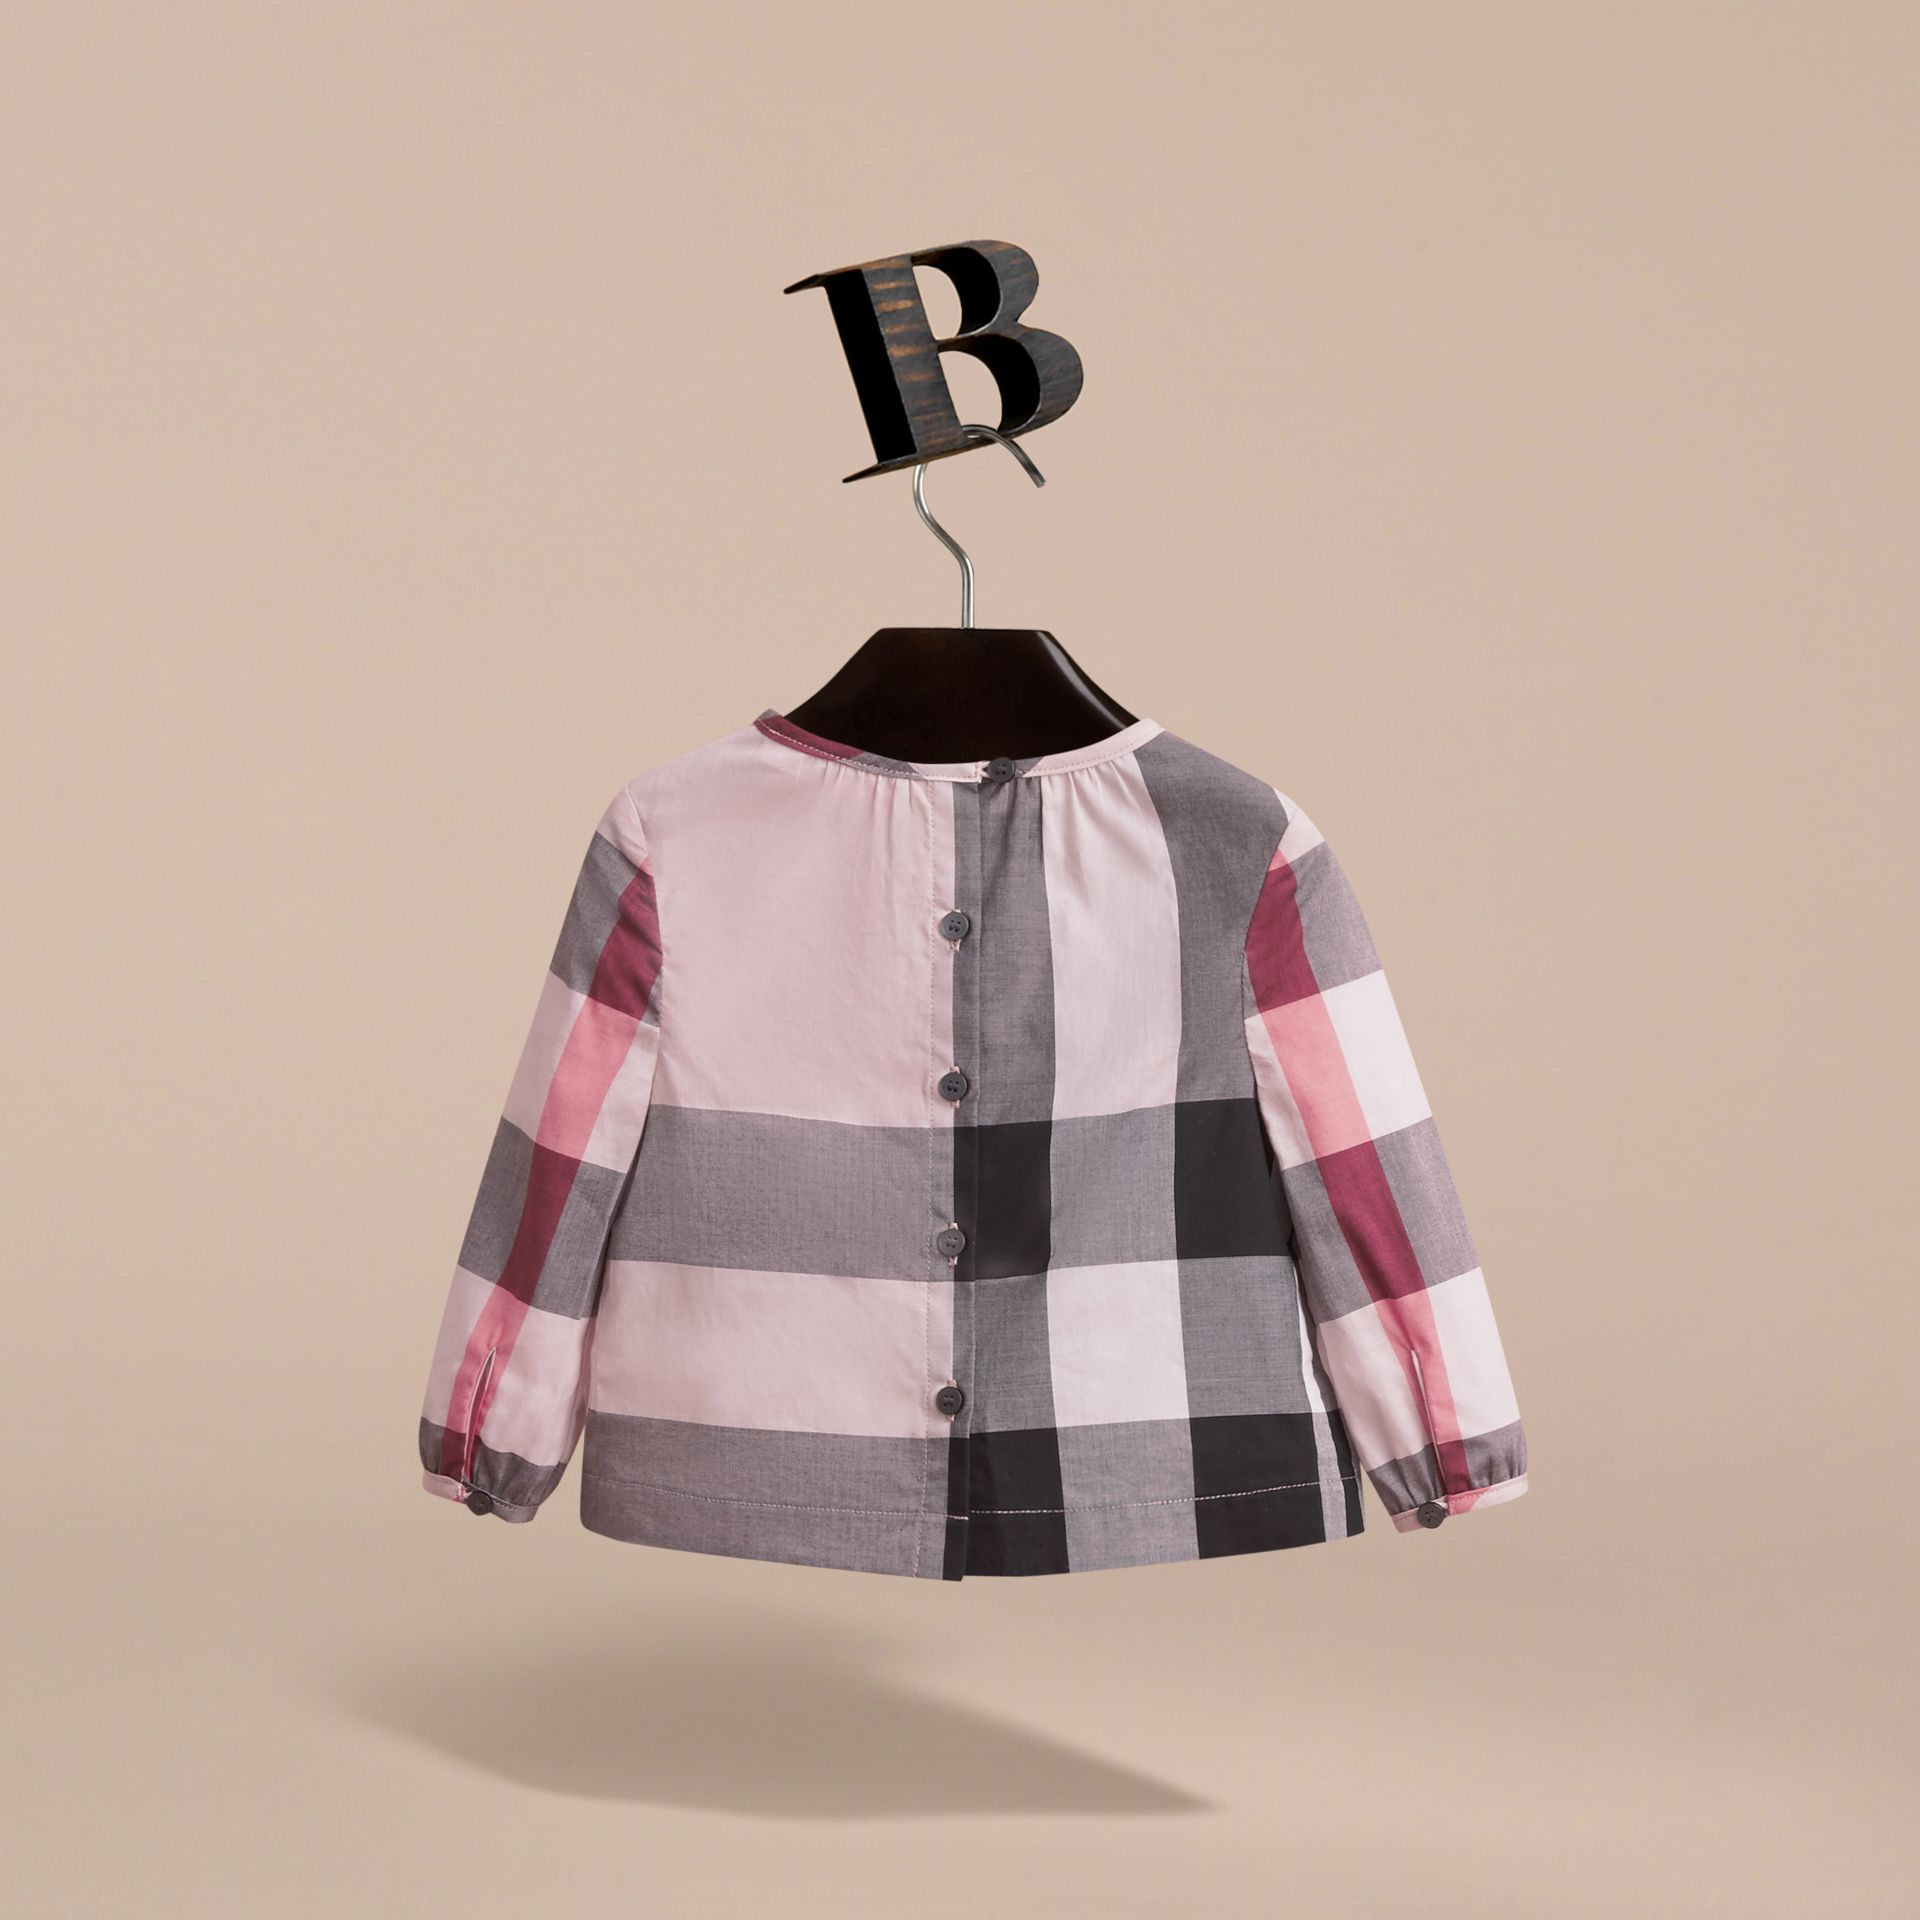 Ruffle Detail Check Cotton Top in Vintage Pink | Burberry - gallery image 4